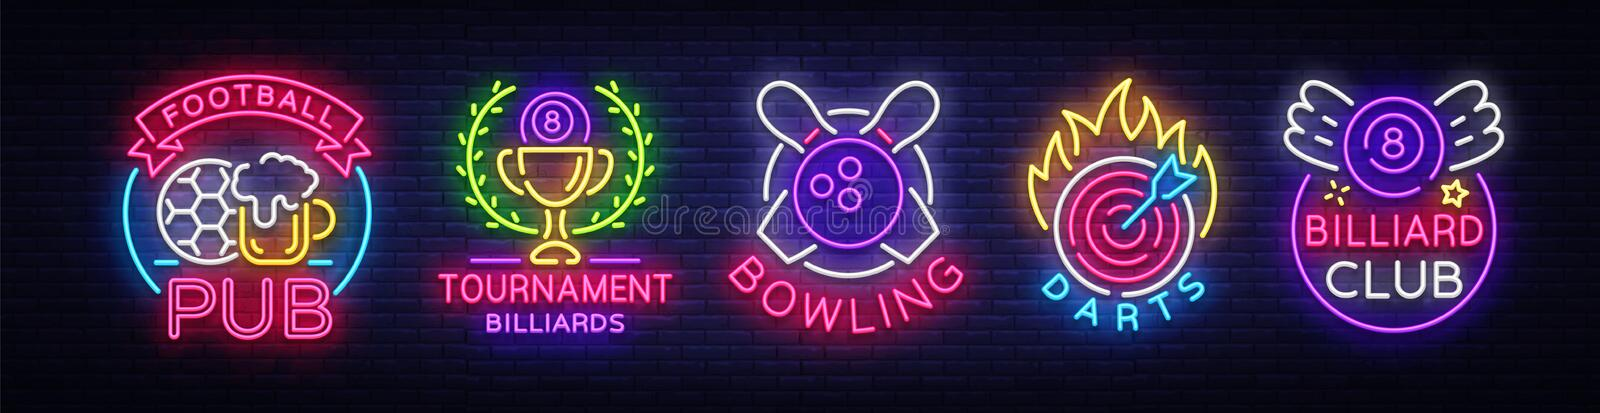 Logo collection in neon style. Set Neon Signs Football Pub, Billiards, Bowling, Darts. Nightlife, Neon signboard, banner stock illustration